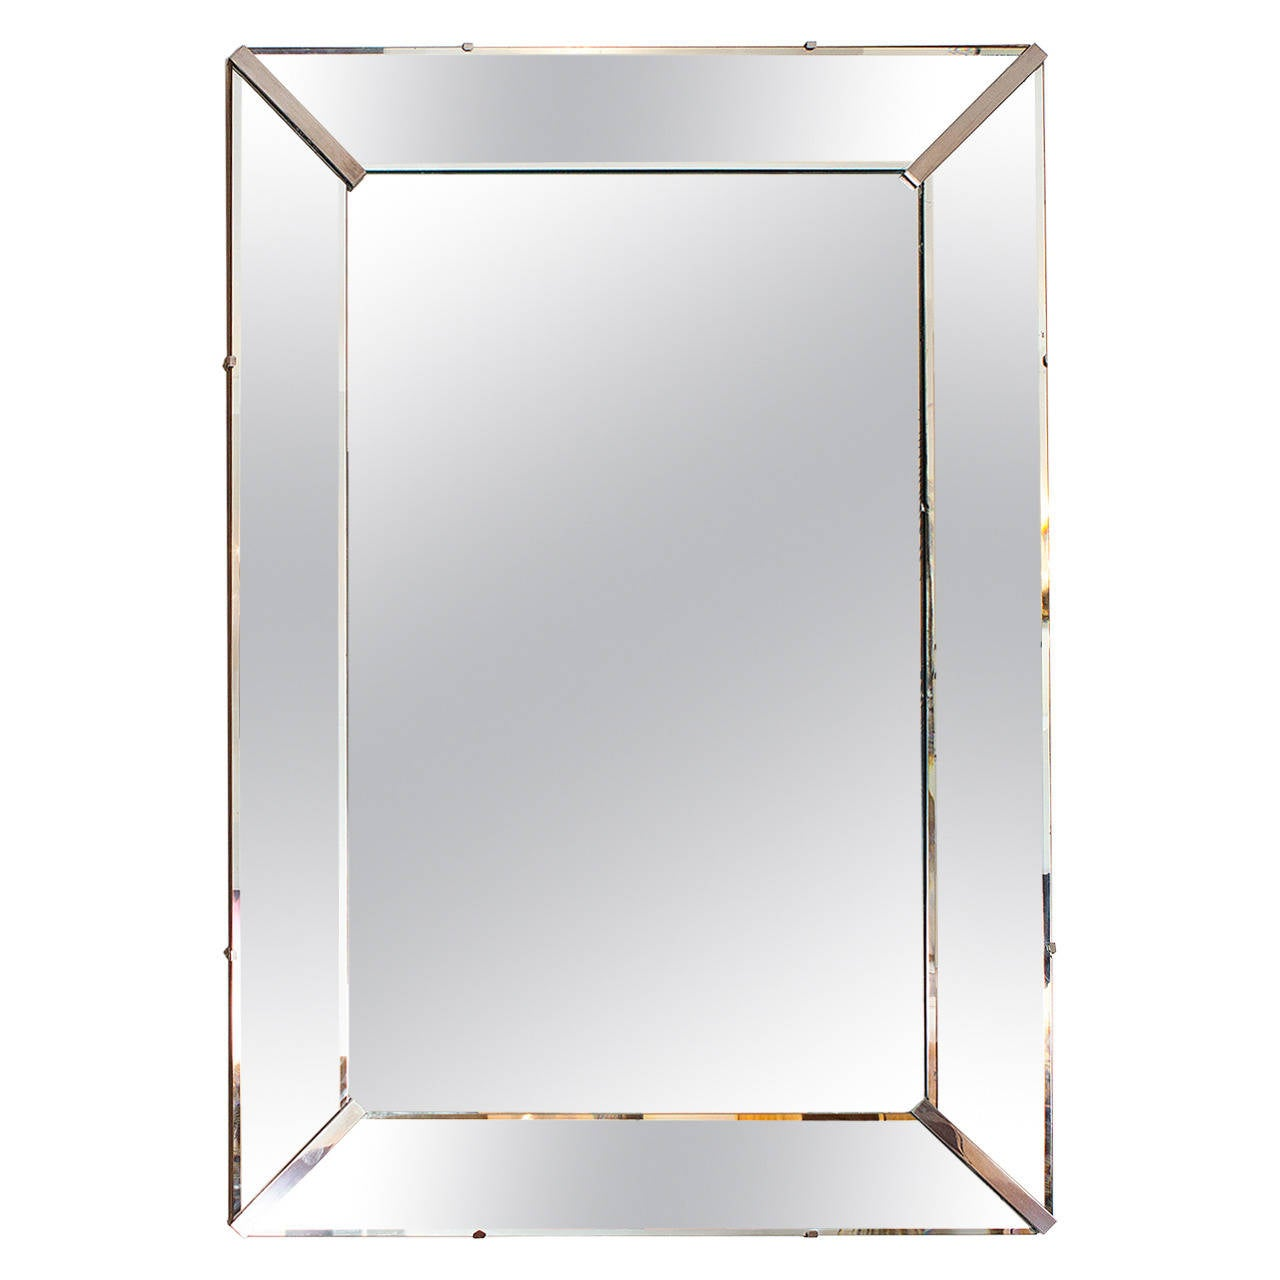 Elegant art deco wall mirror france circa 1940 at 1stdibs for Mirror o mirror